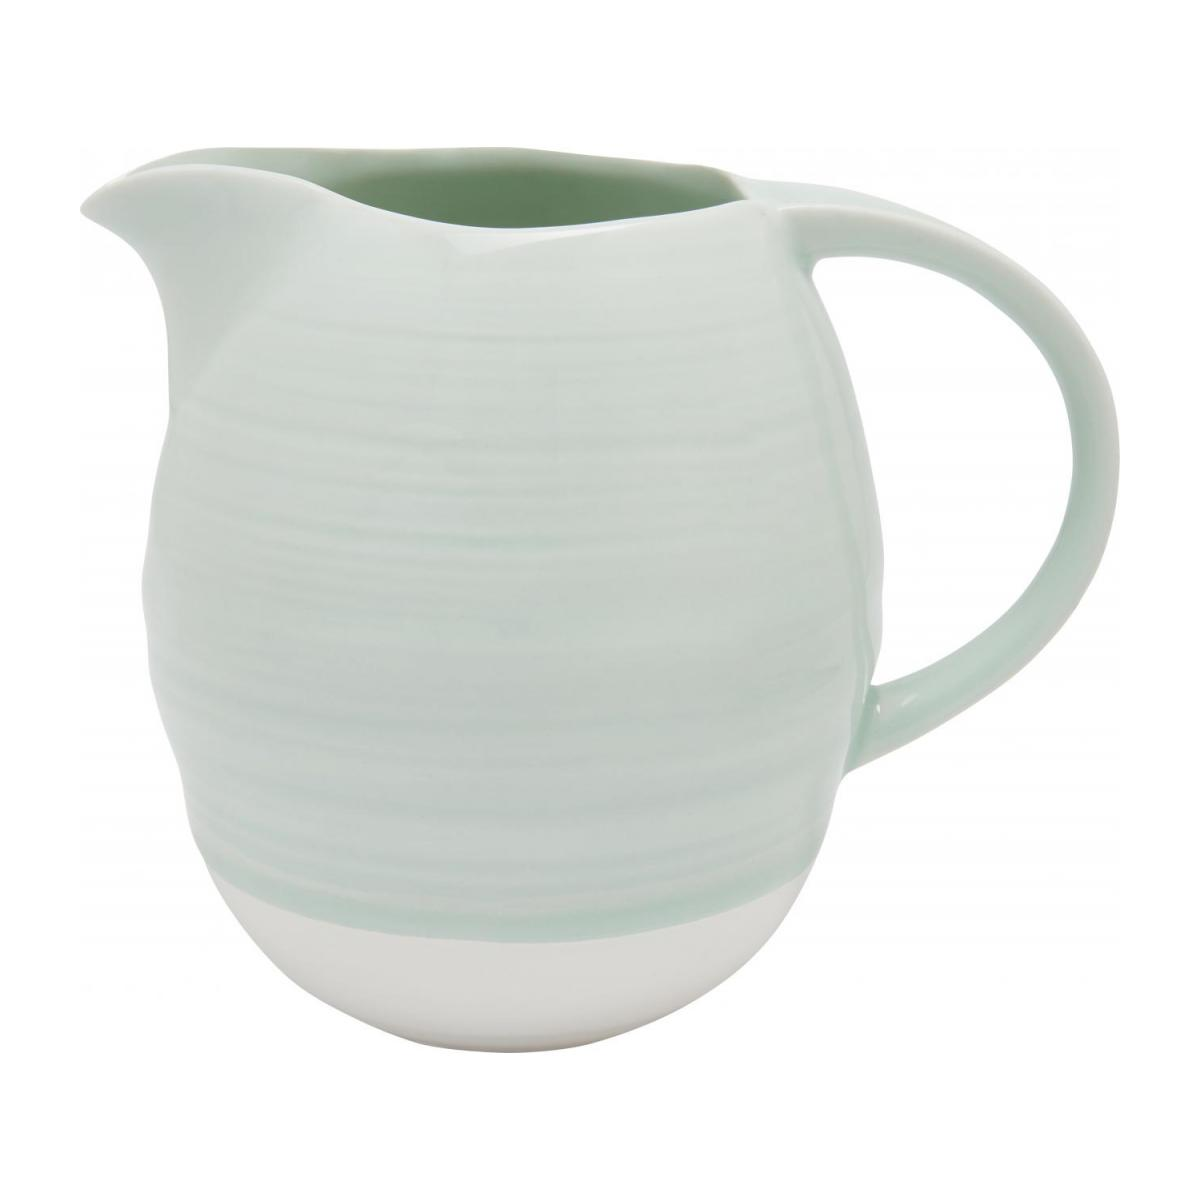 Pitcher made of porcelain celadon n°2